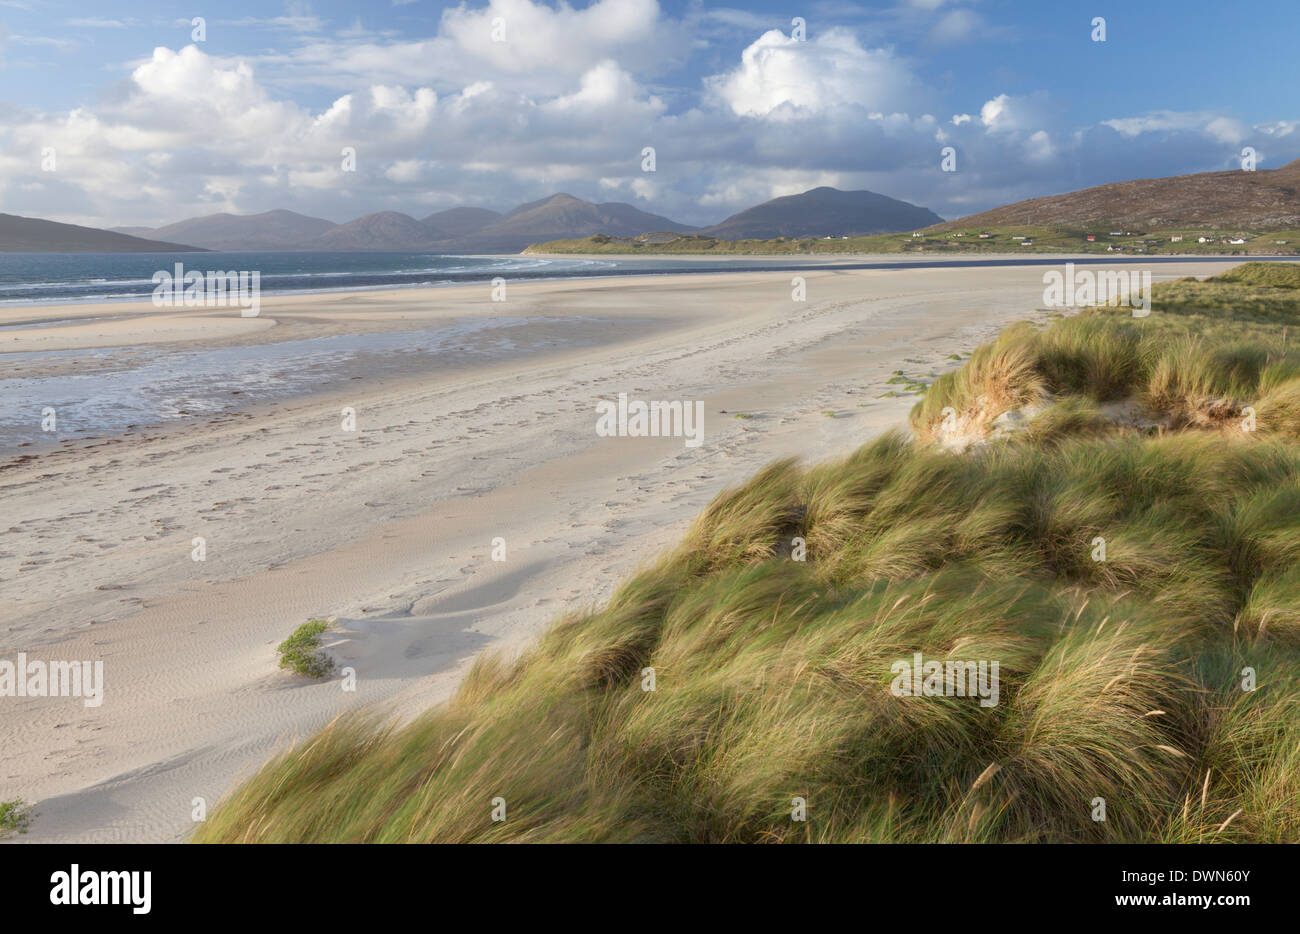 A view of Seilebost beach, Isle of Harris, Outer Hebrides, Scotland, United Kingdom, Europe - Stock Image